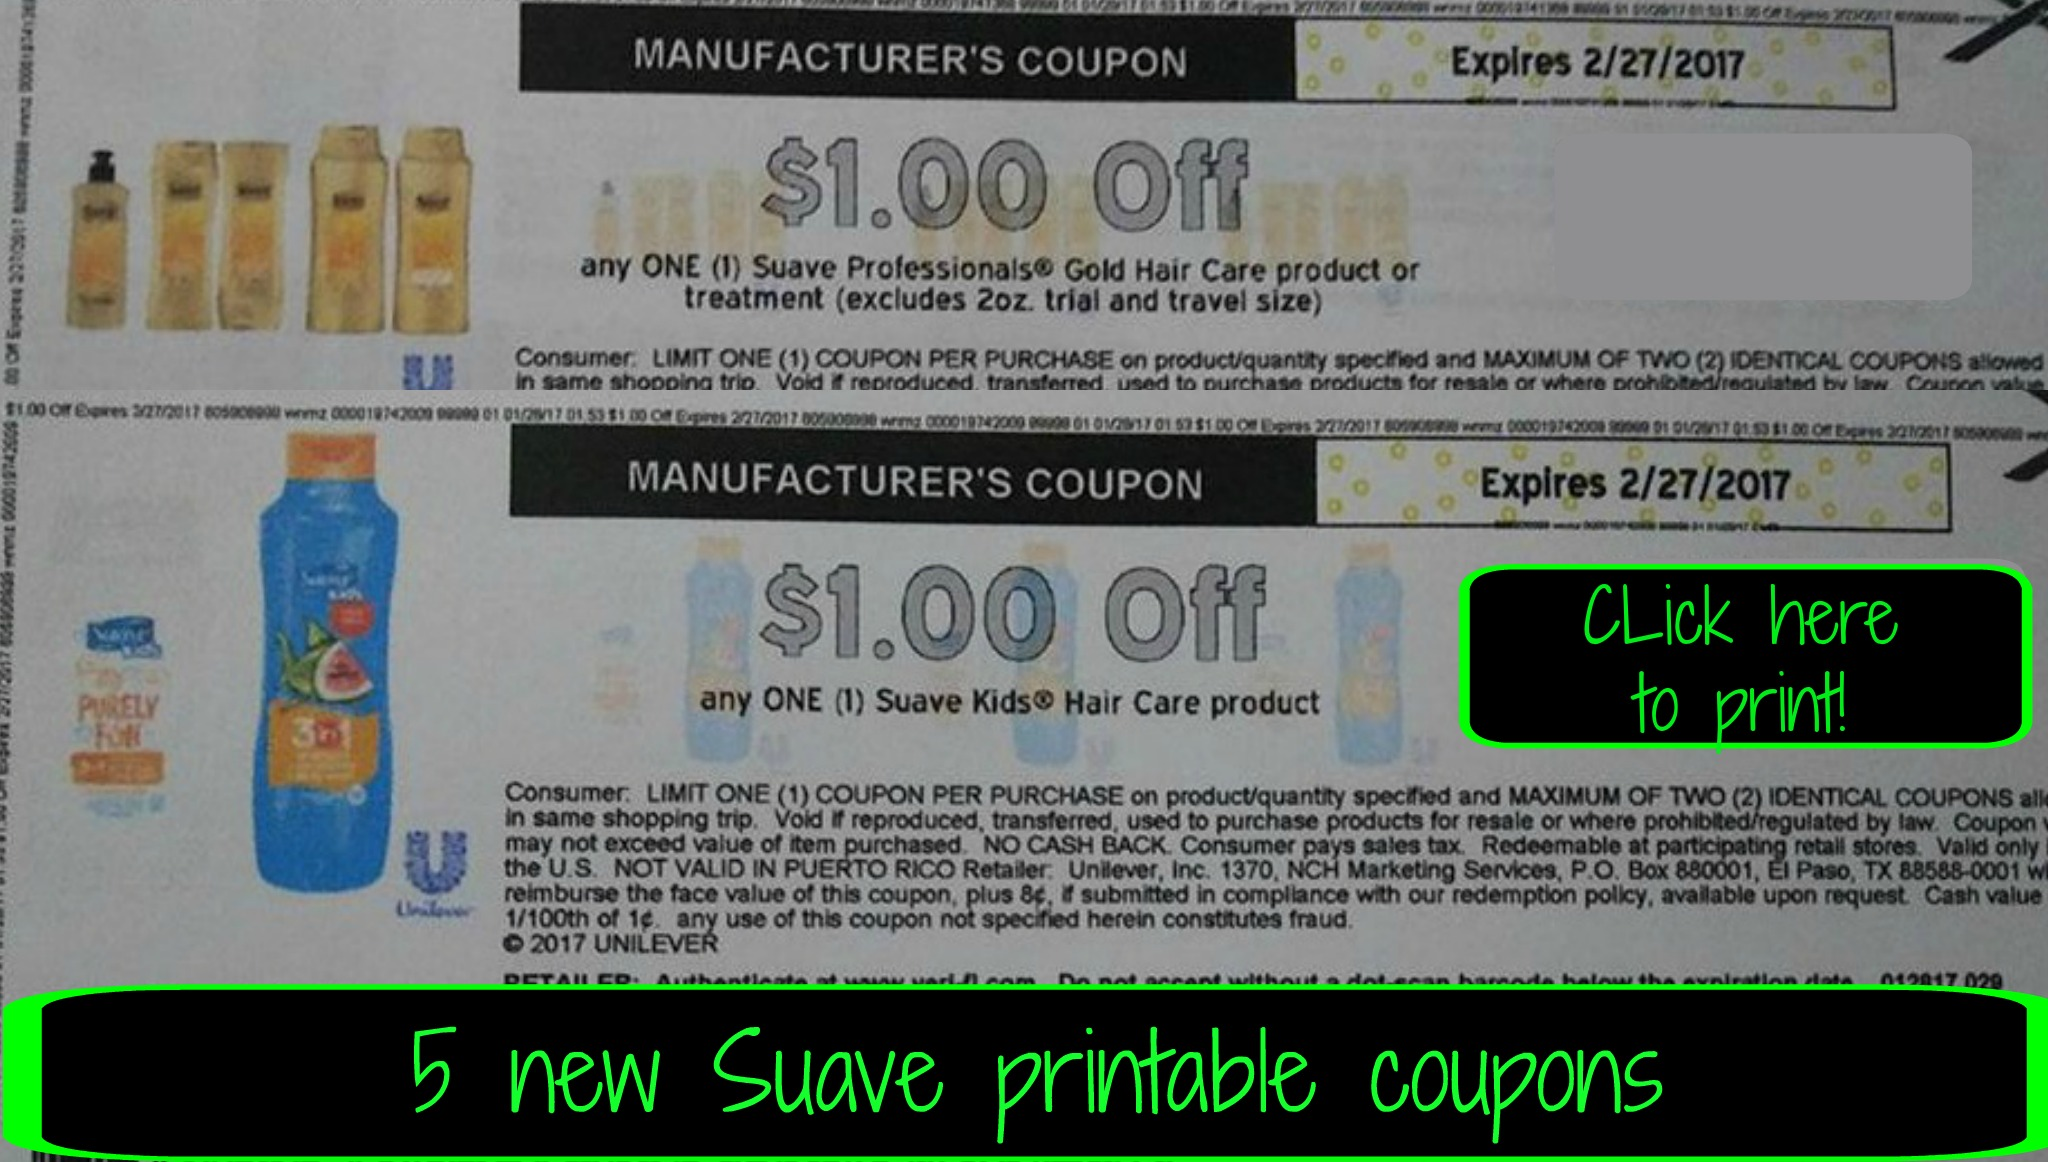 graphic about Suave Printable Coupons known as Simply click right here in the direction of print ~ 5 fresh Artful printable coupon codes